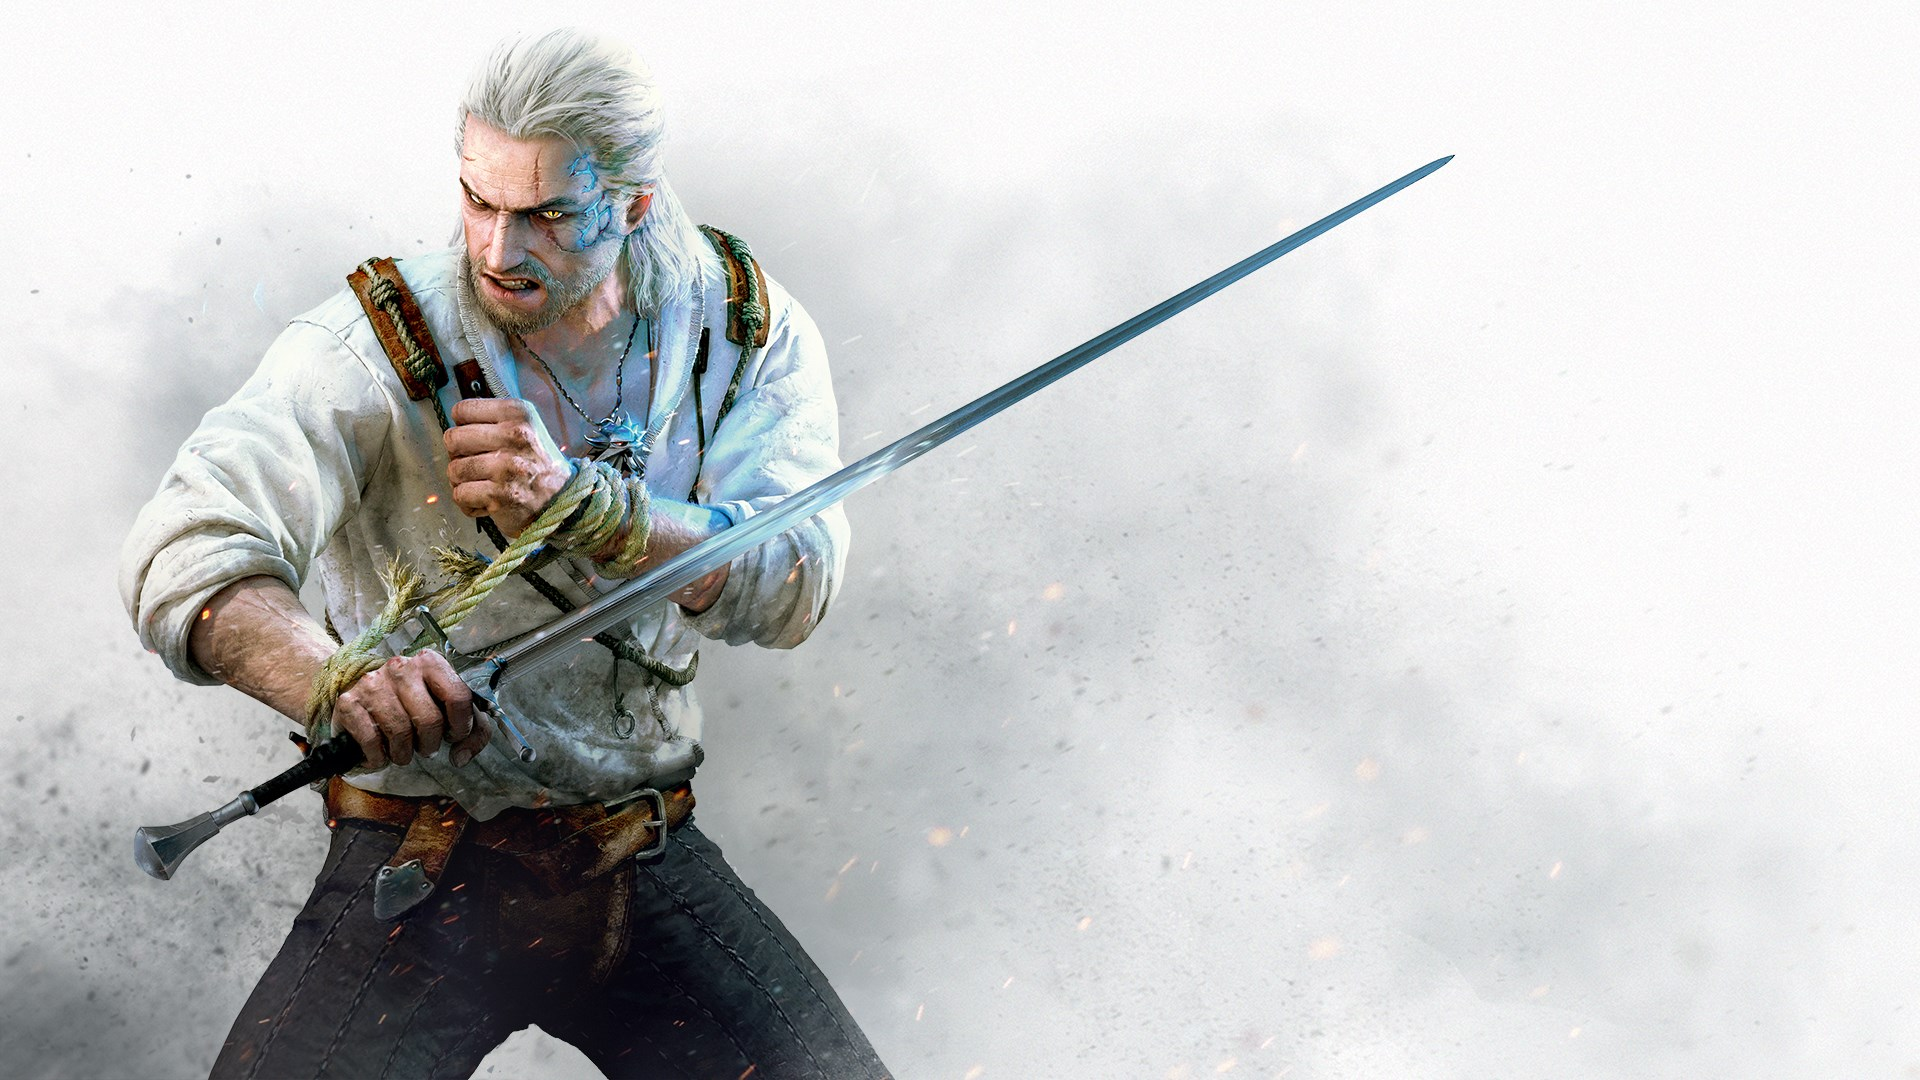 Witcher 3 sales